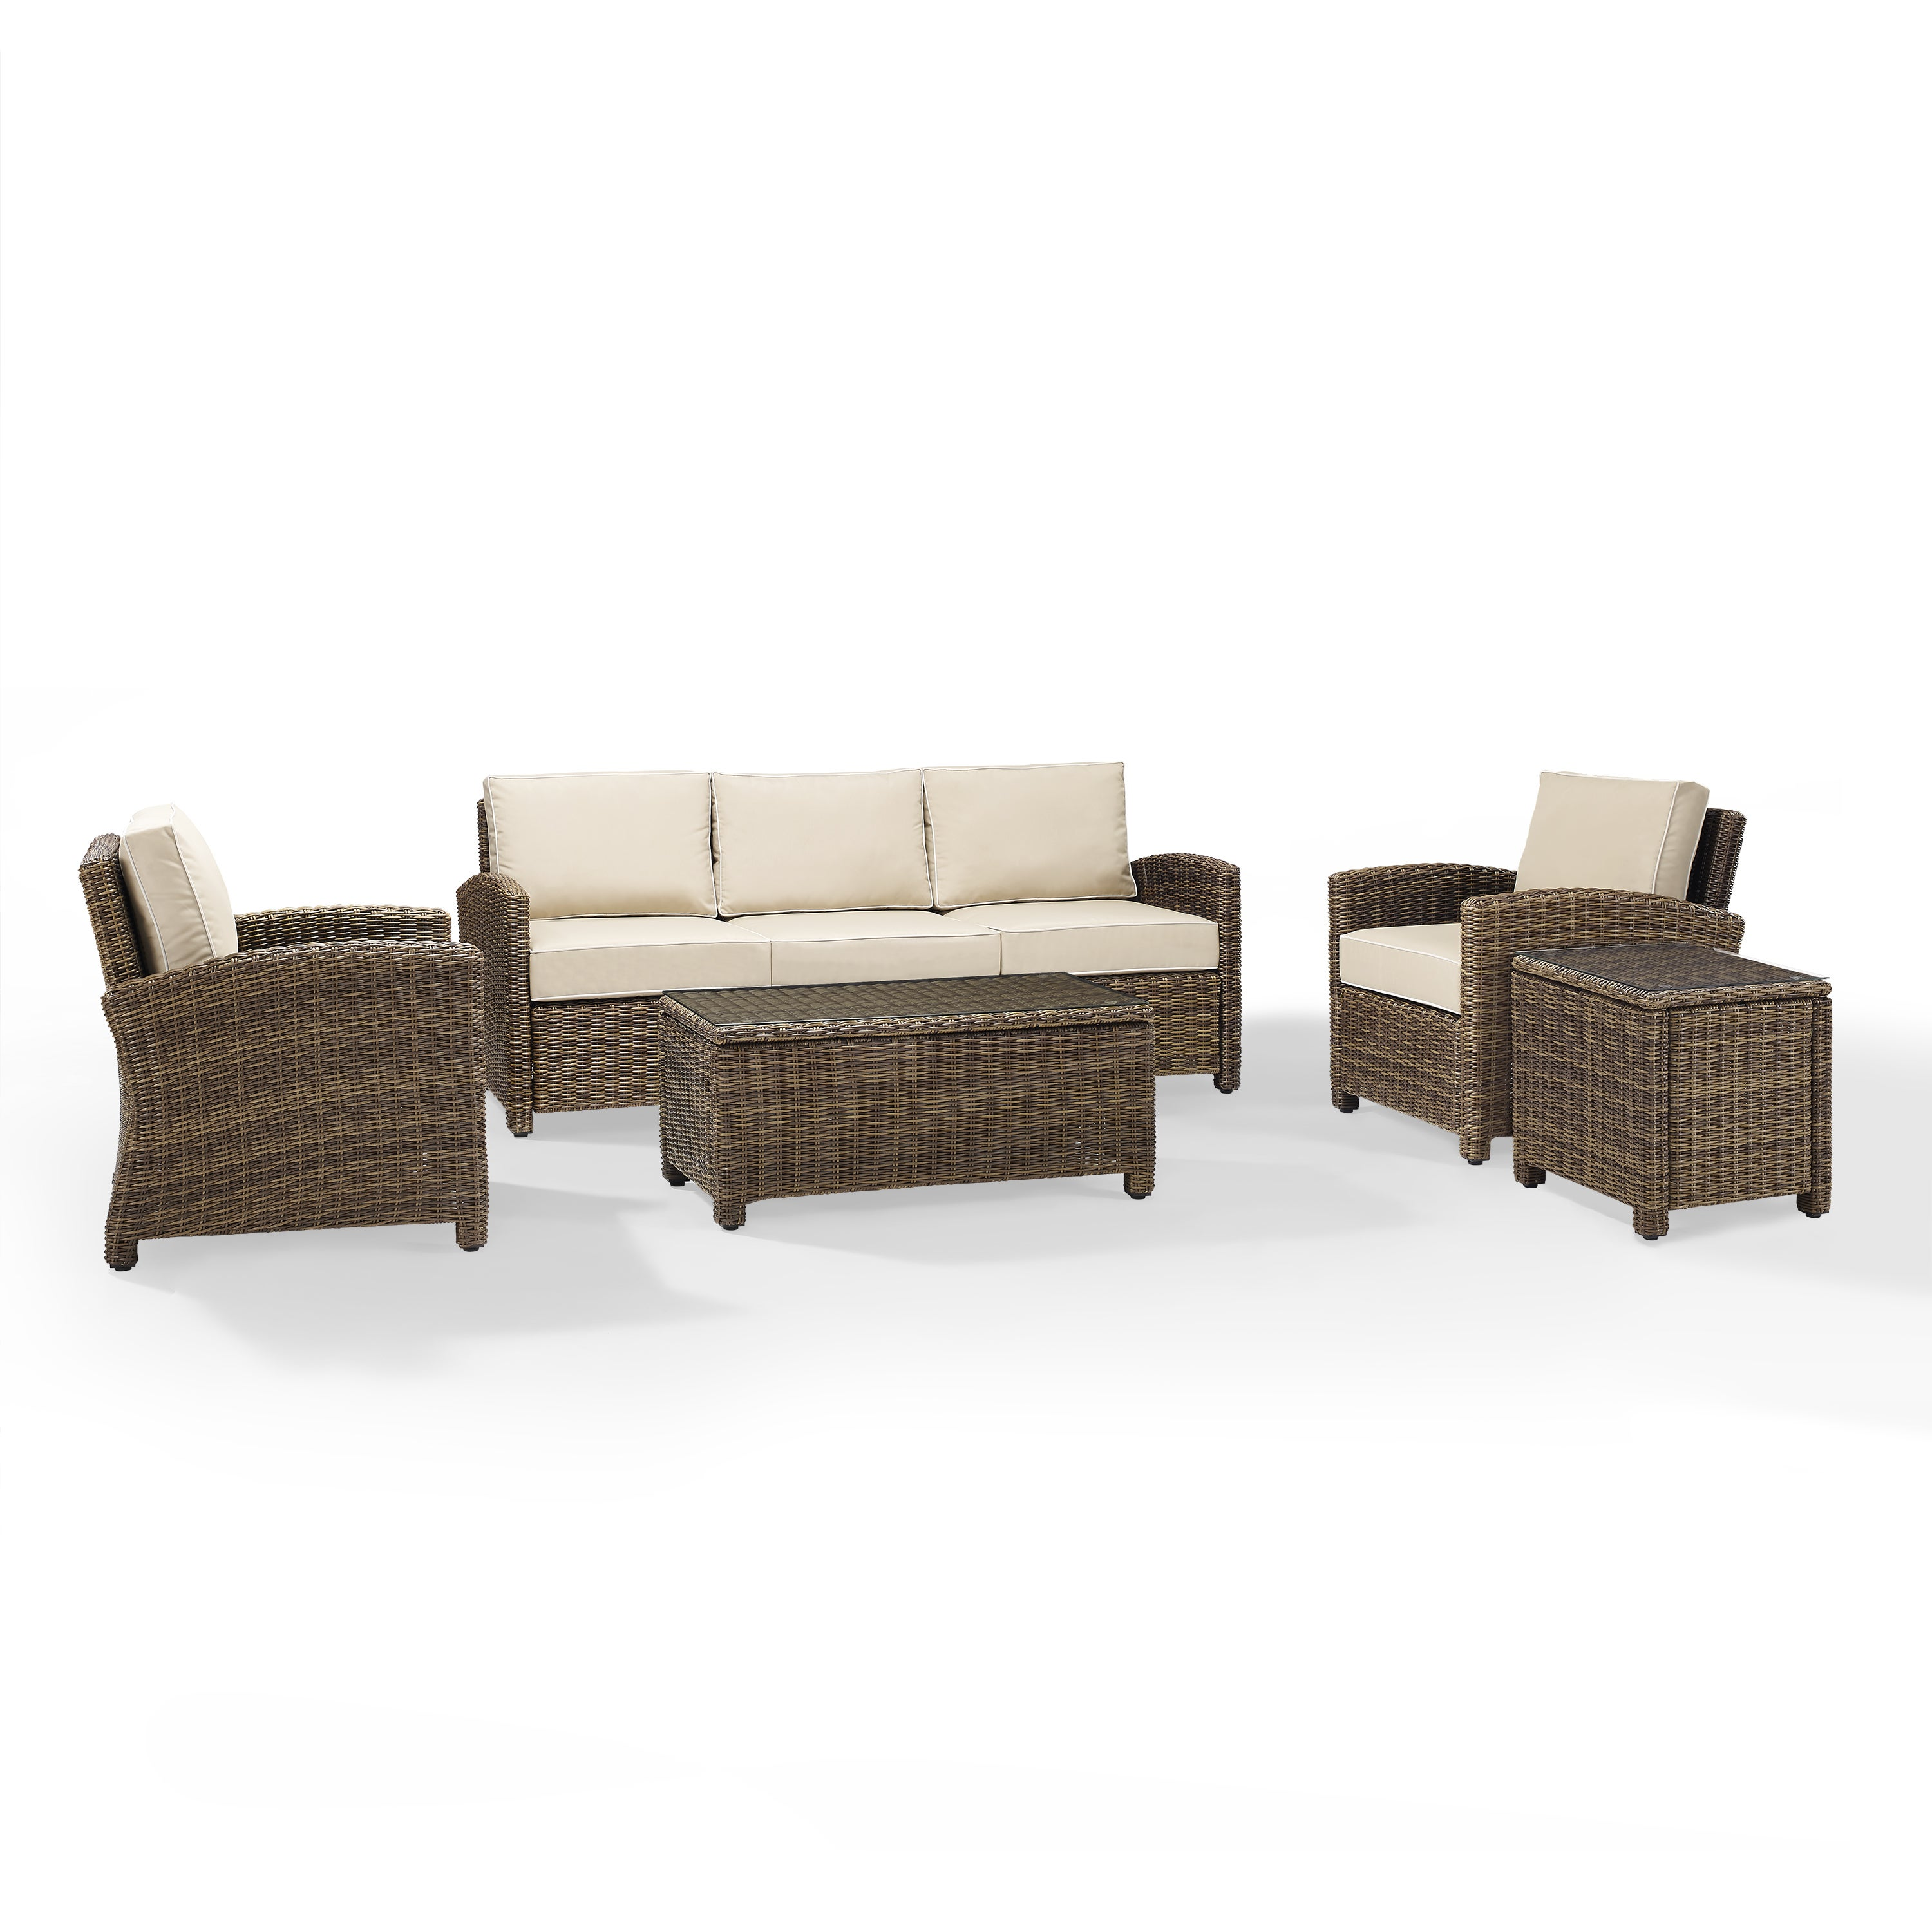 Shop Bradenton 5 Piece Outdoor Wicker Set With Sand Cushions   Sofa, Two  Arm Chairs, Side Table U0026 Glass Top Table   Free Shipping Today    Overstock.com   ...